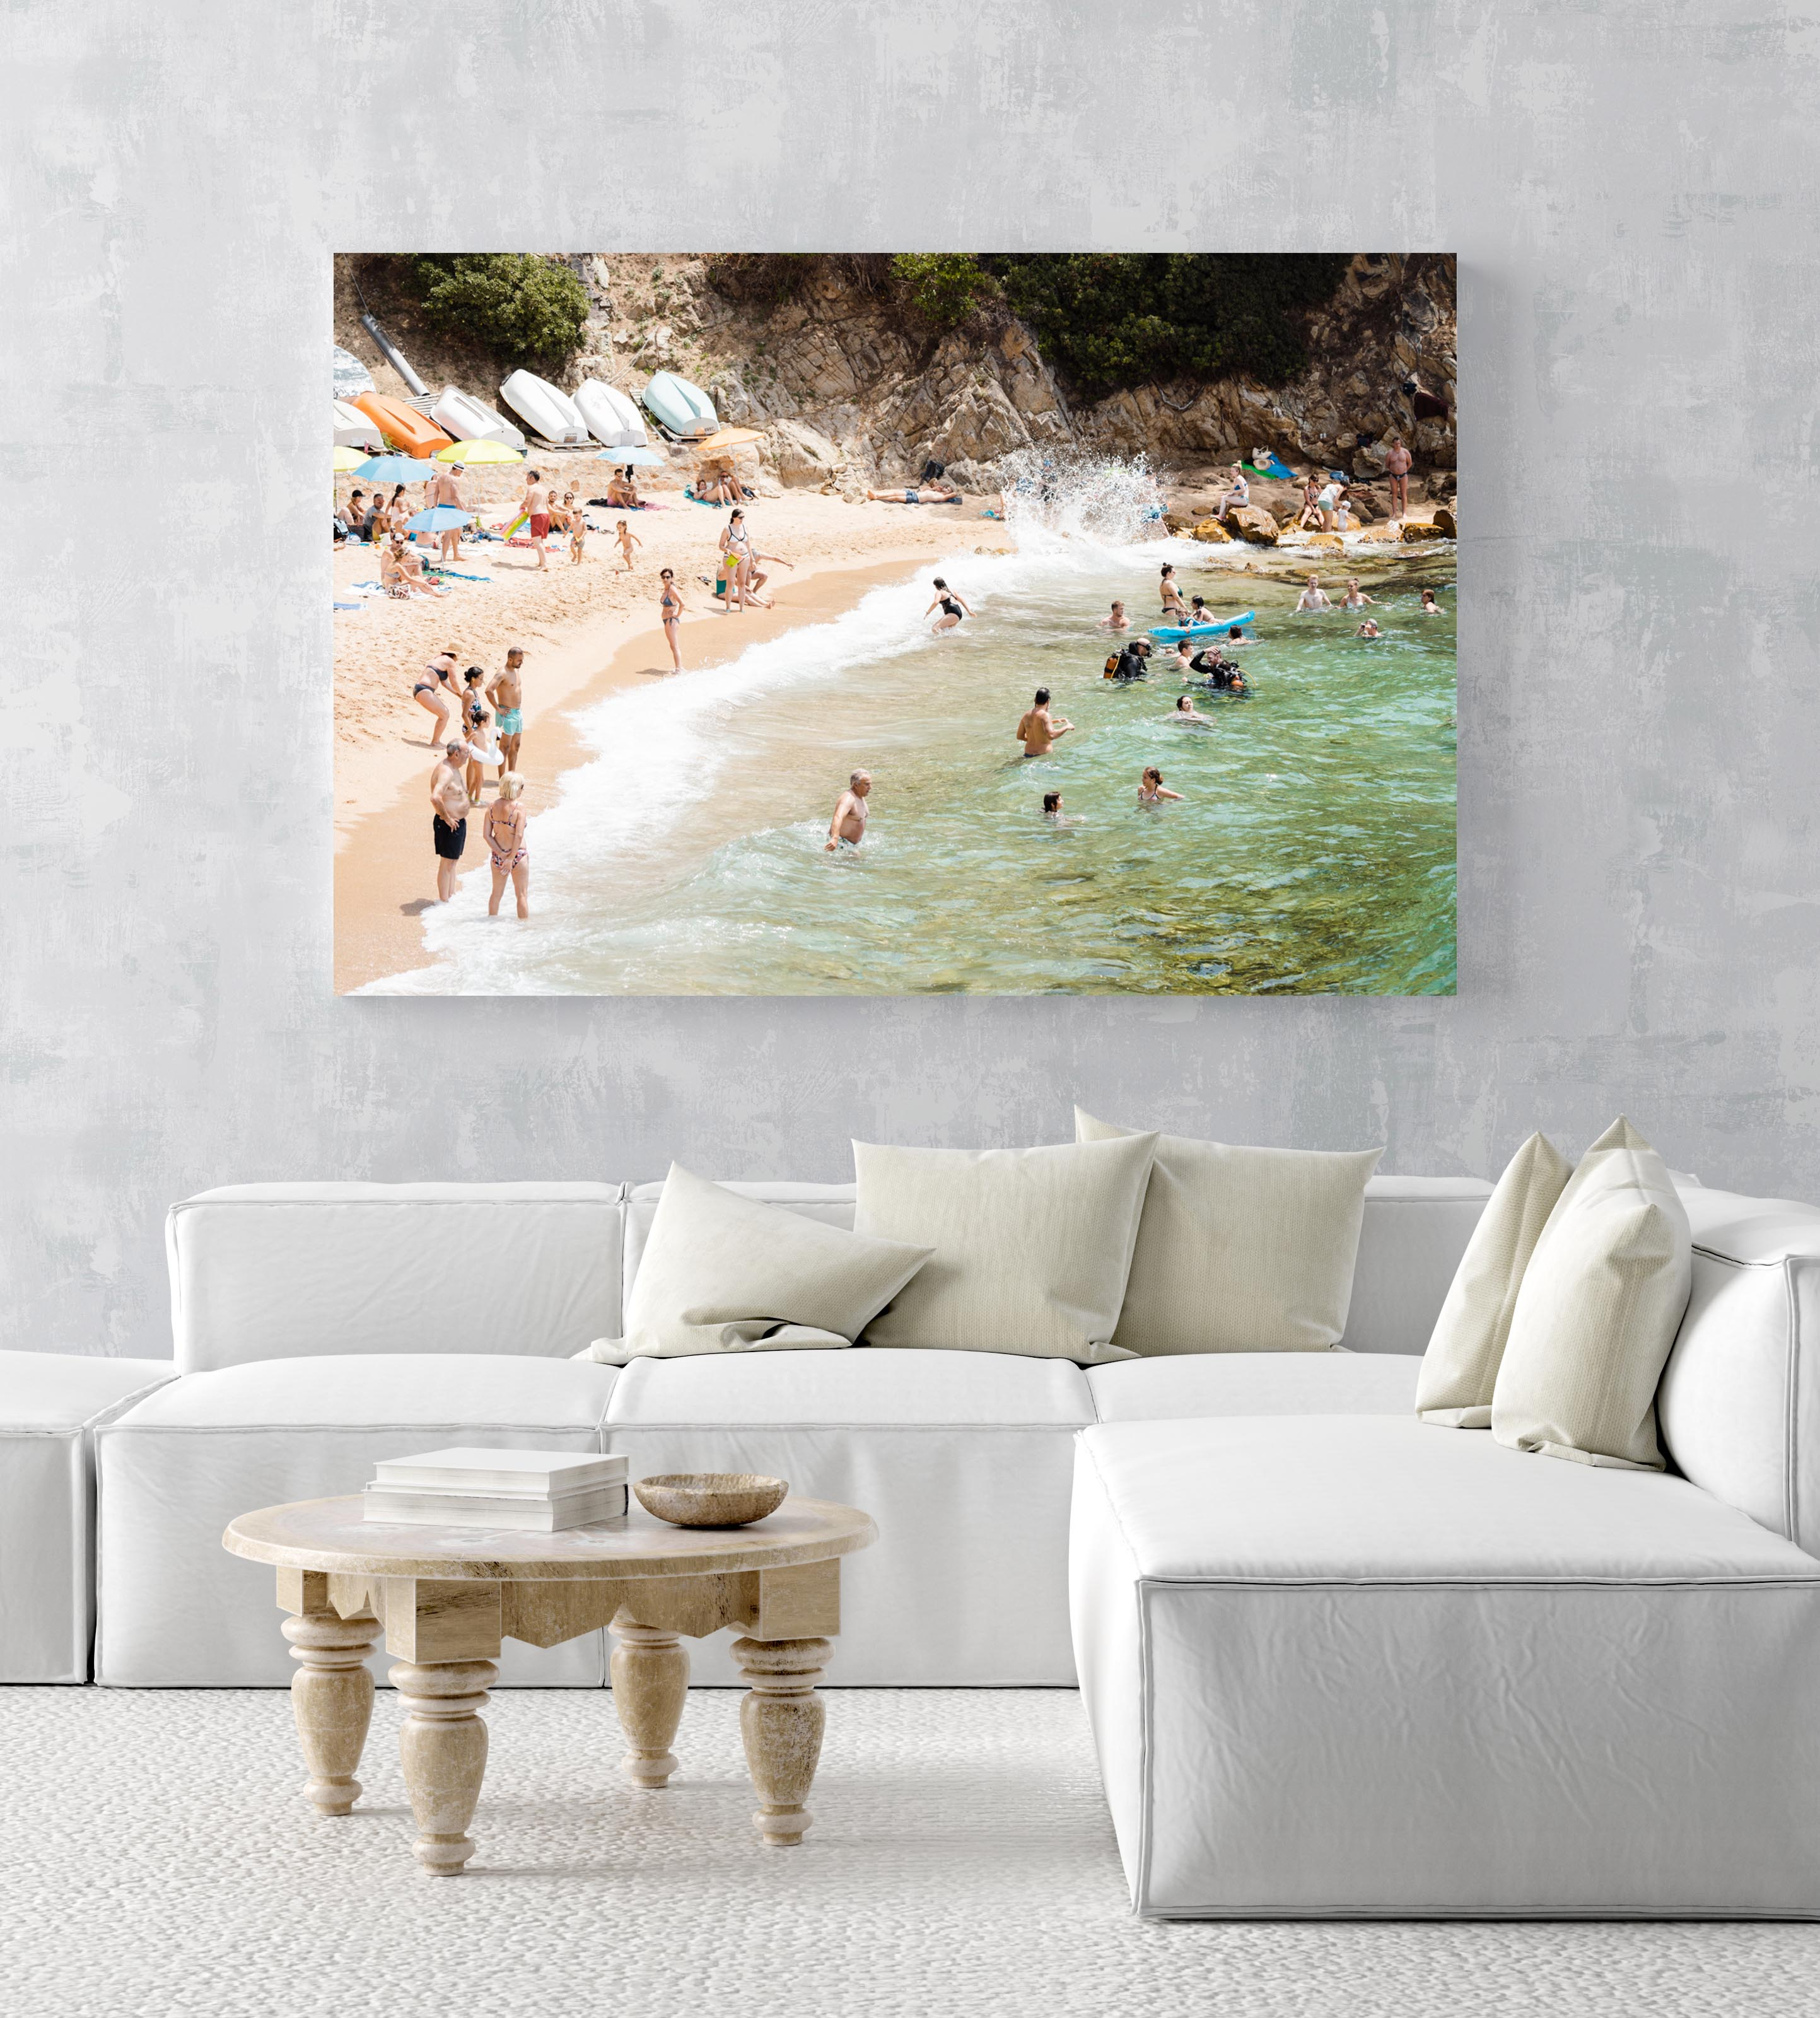 Swimmers, divers and people lying at beach with green water and colorful boats in an acrylic/perspex frame